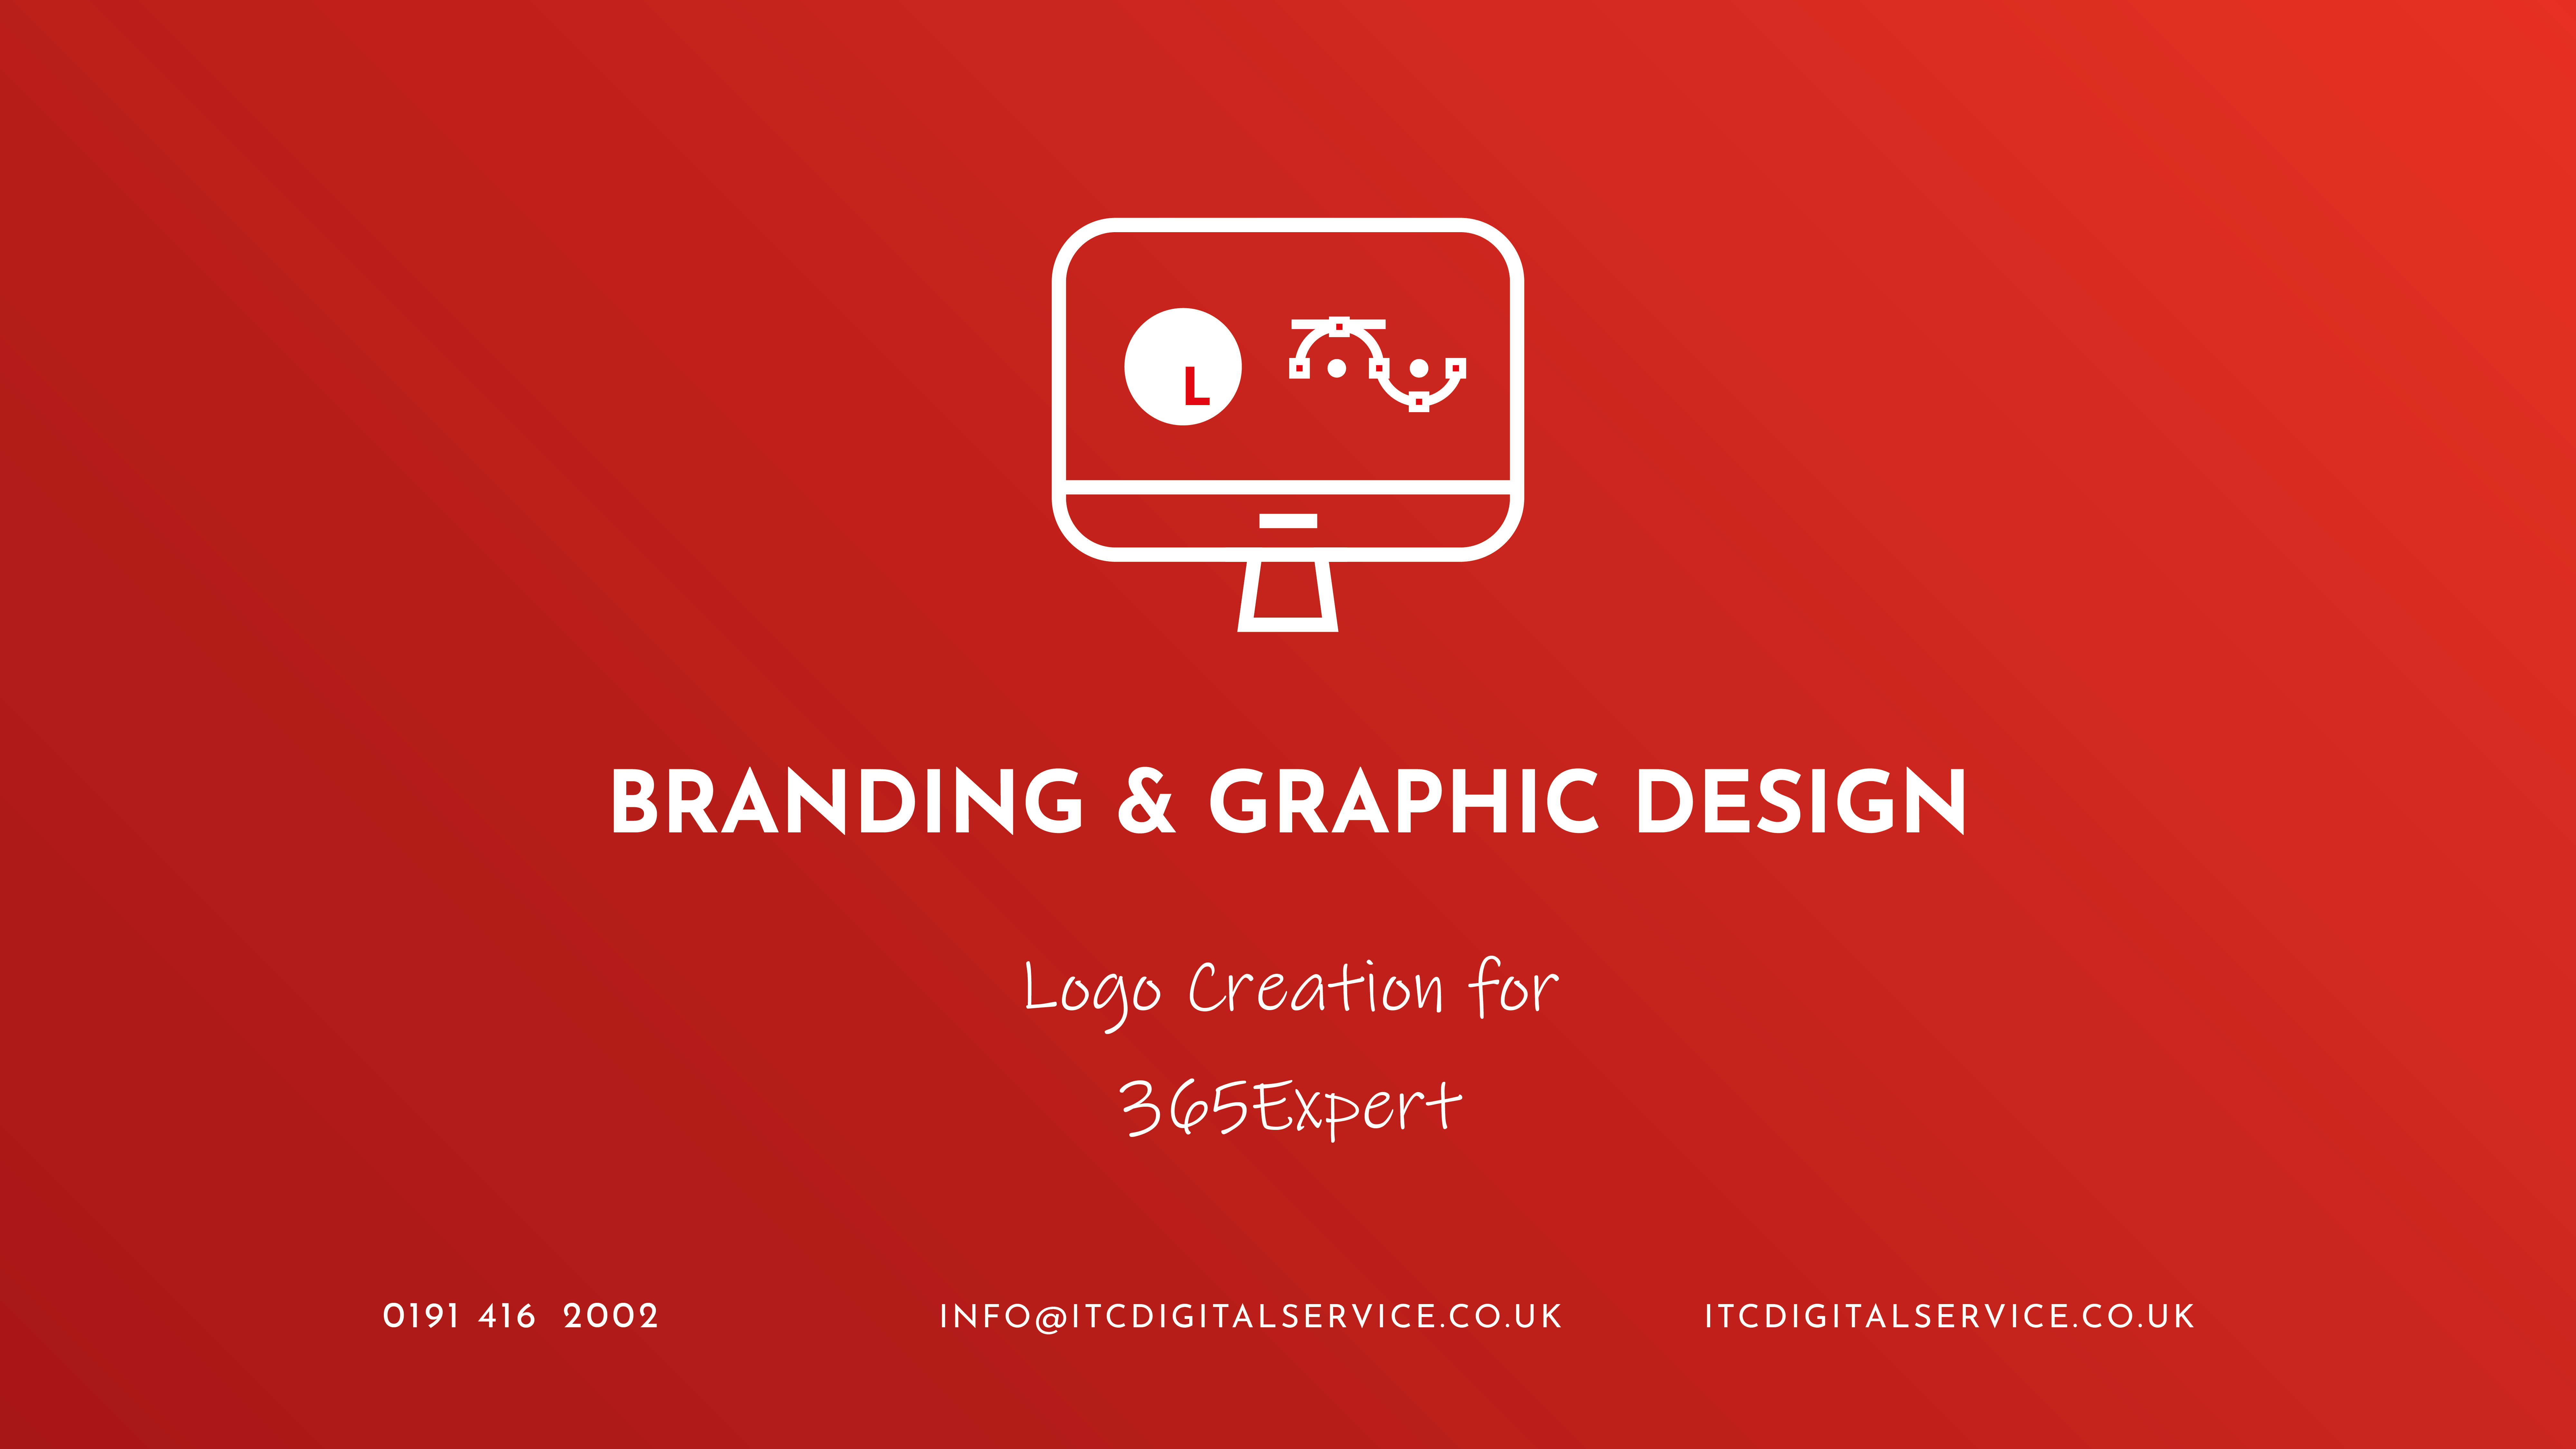 365Expert Brand Journey and Time-lapse Video